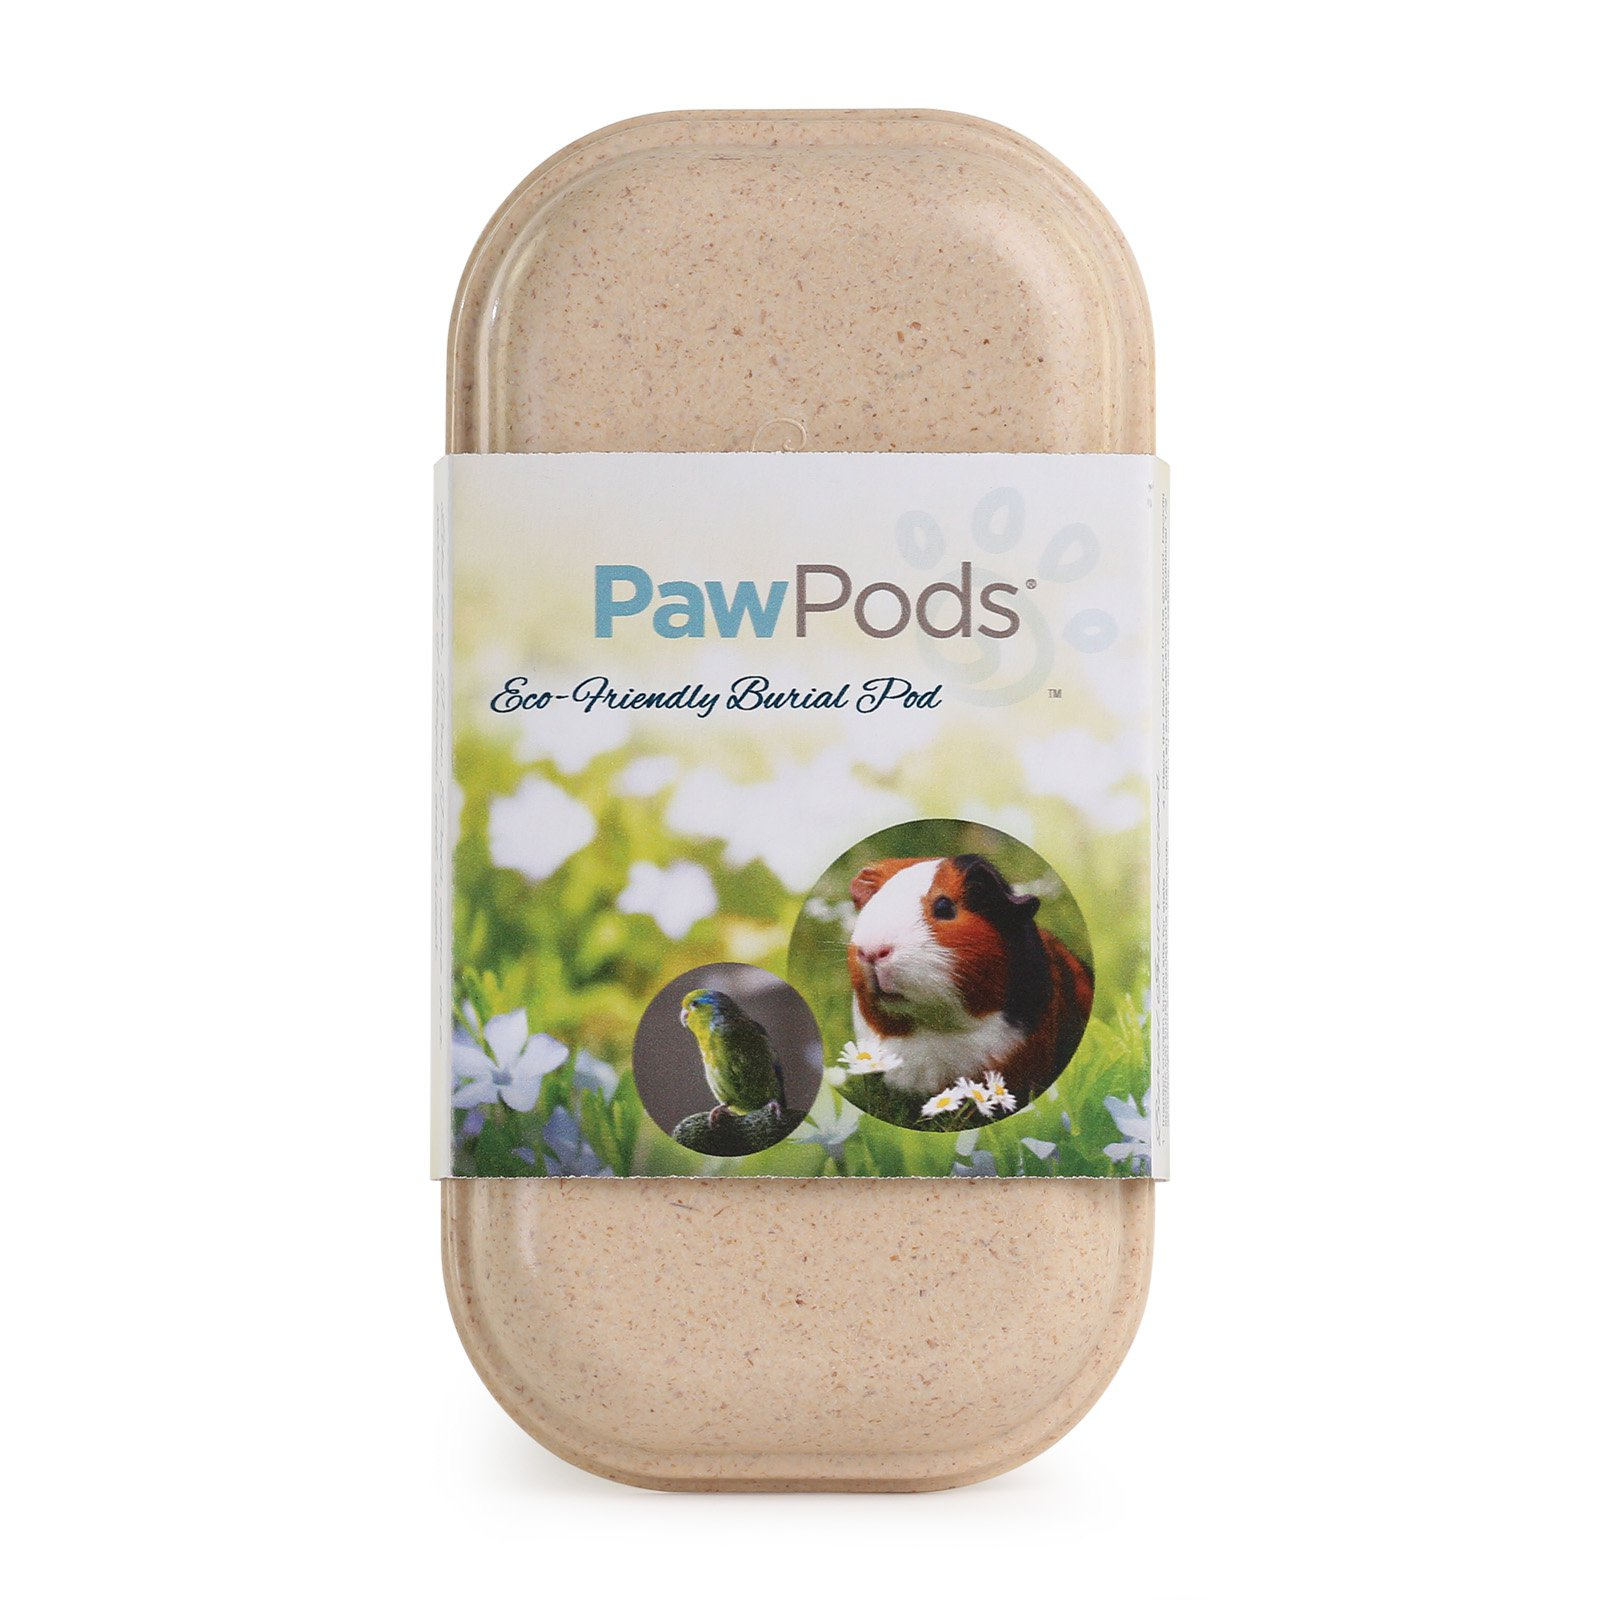 Paw Pods Biodegradable Pet Burial Pod with Seeded Leaf - Mini